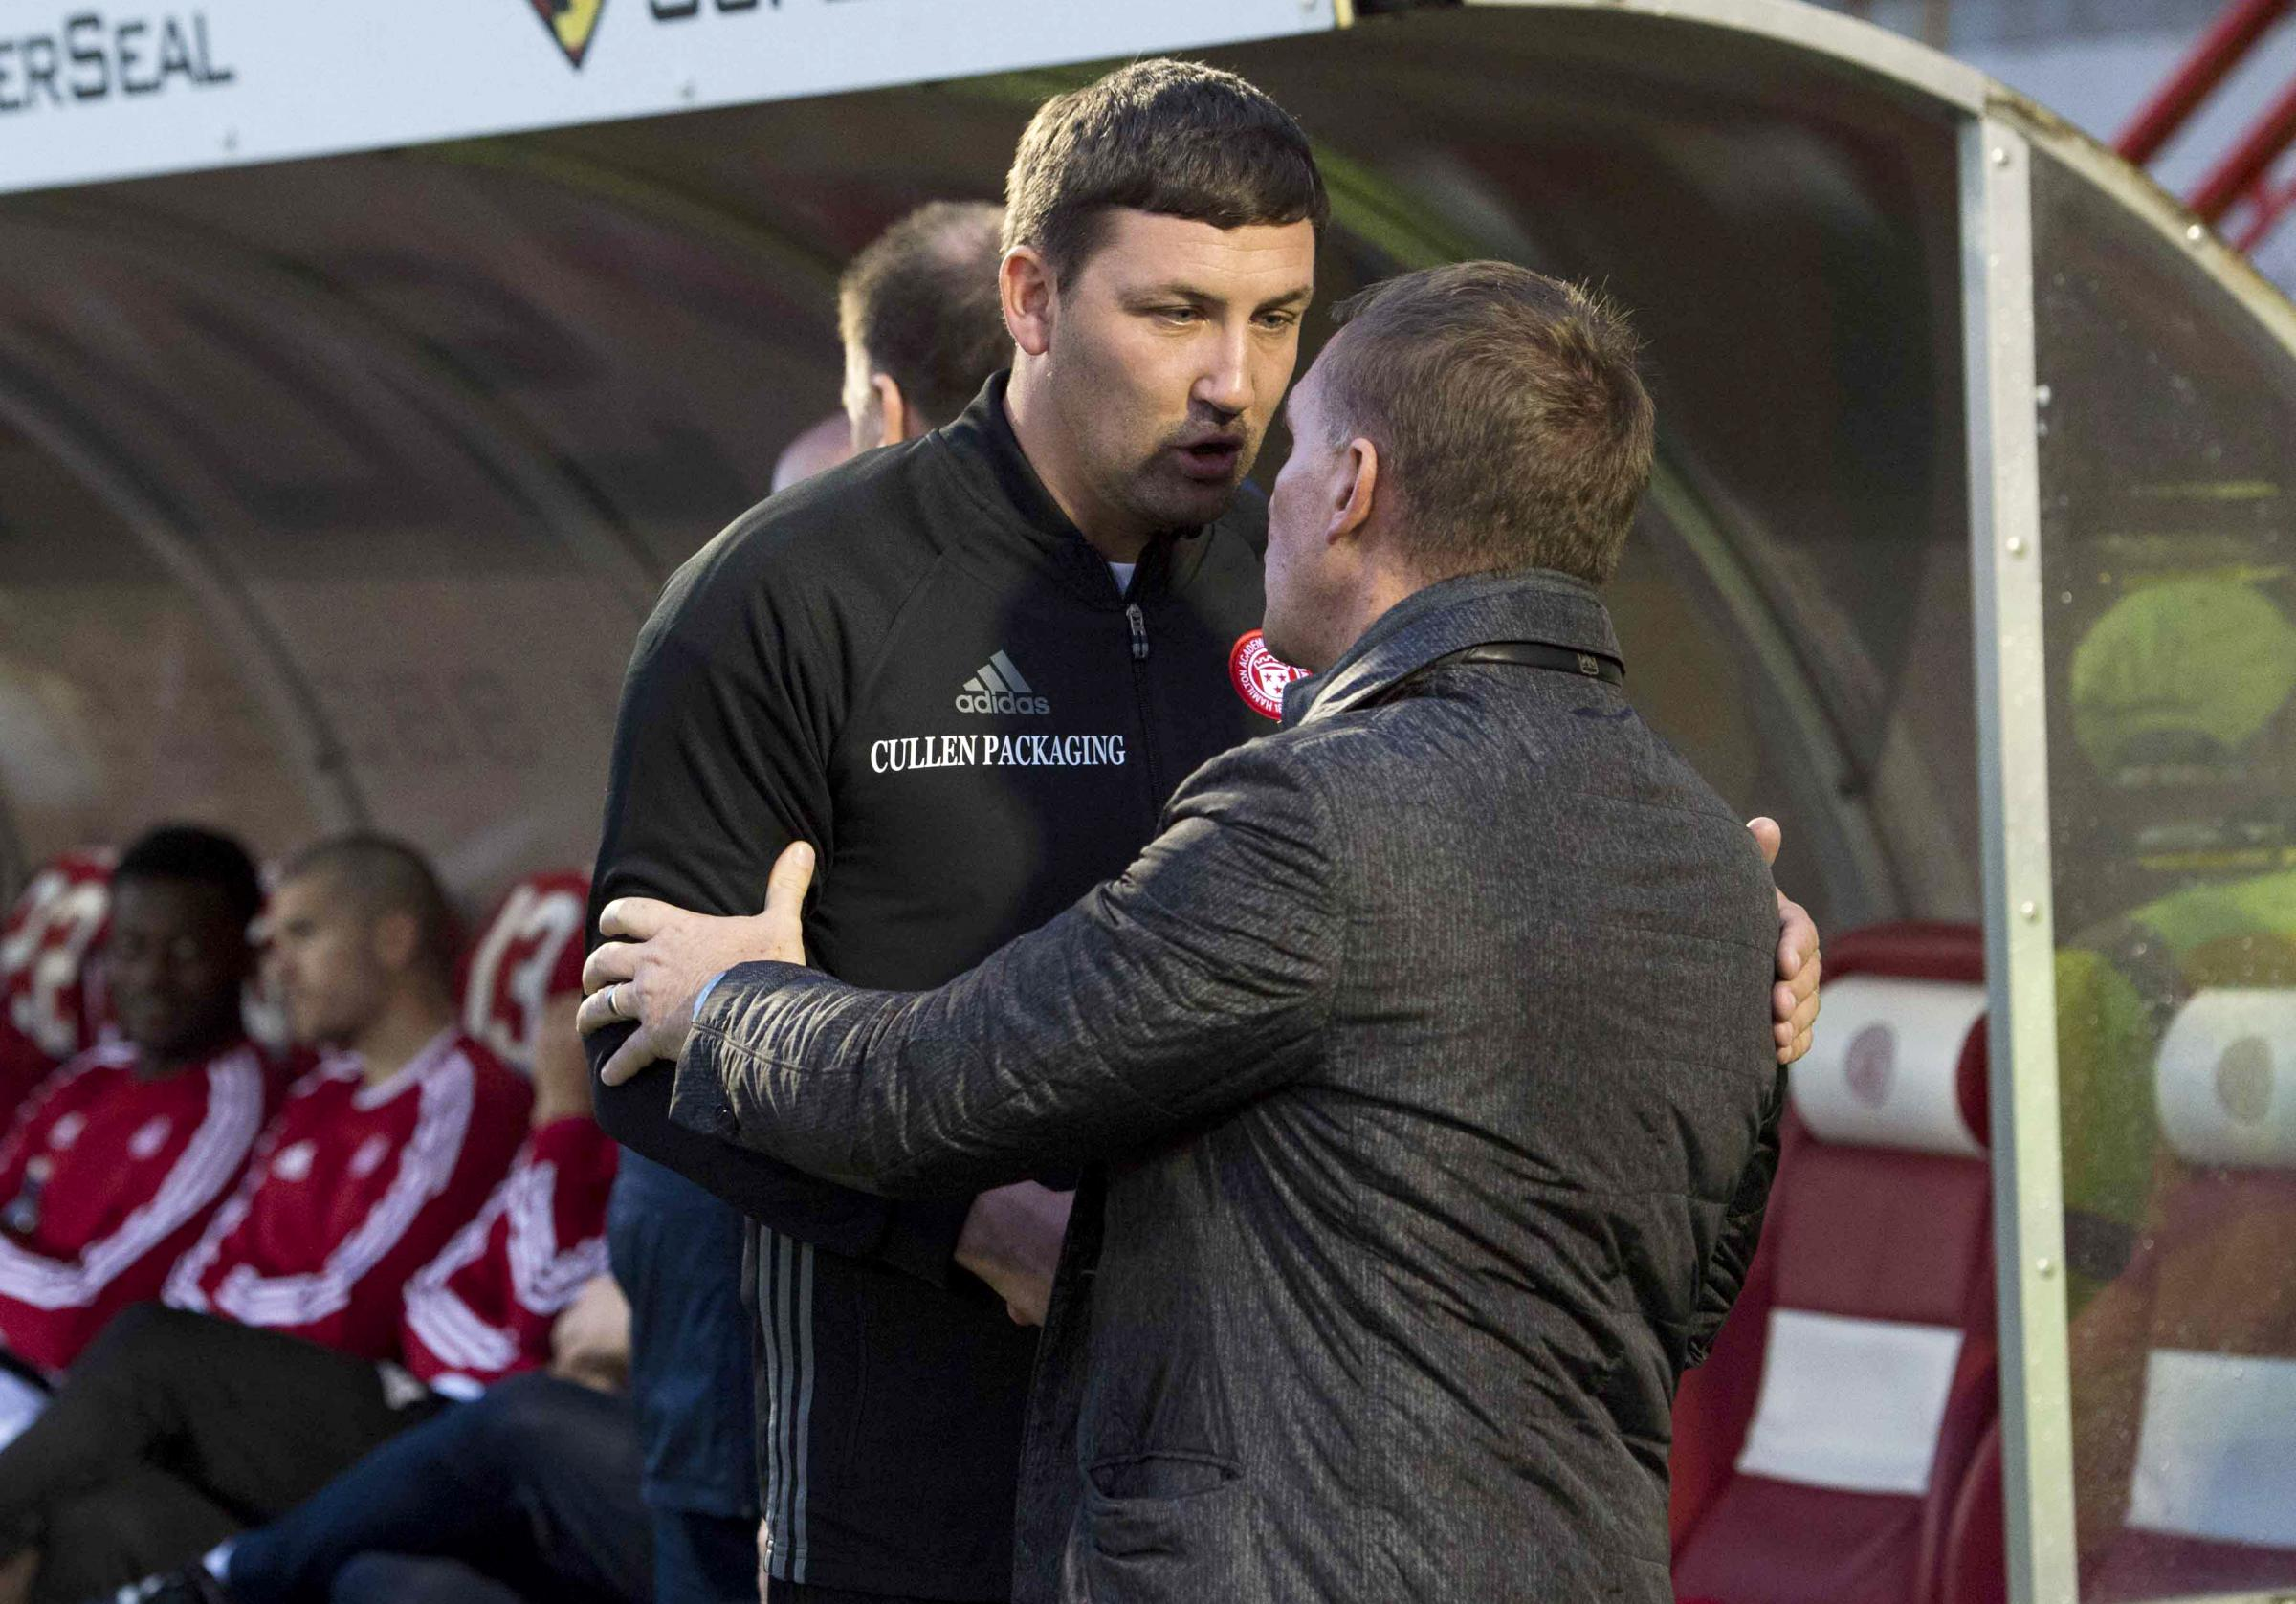 Martin Canning expressed sympathy for Brendan Rodgers after watching his own side blow games through avoidable mistakes.